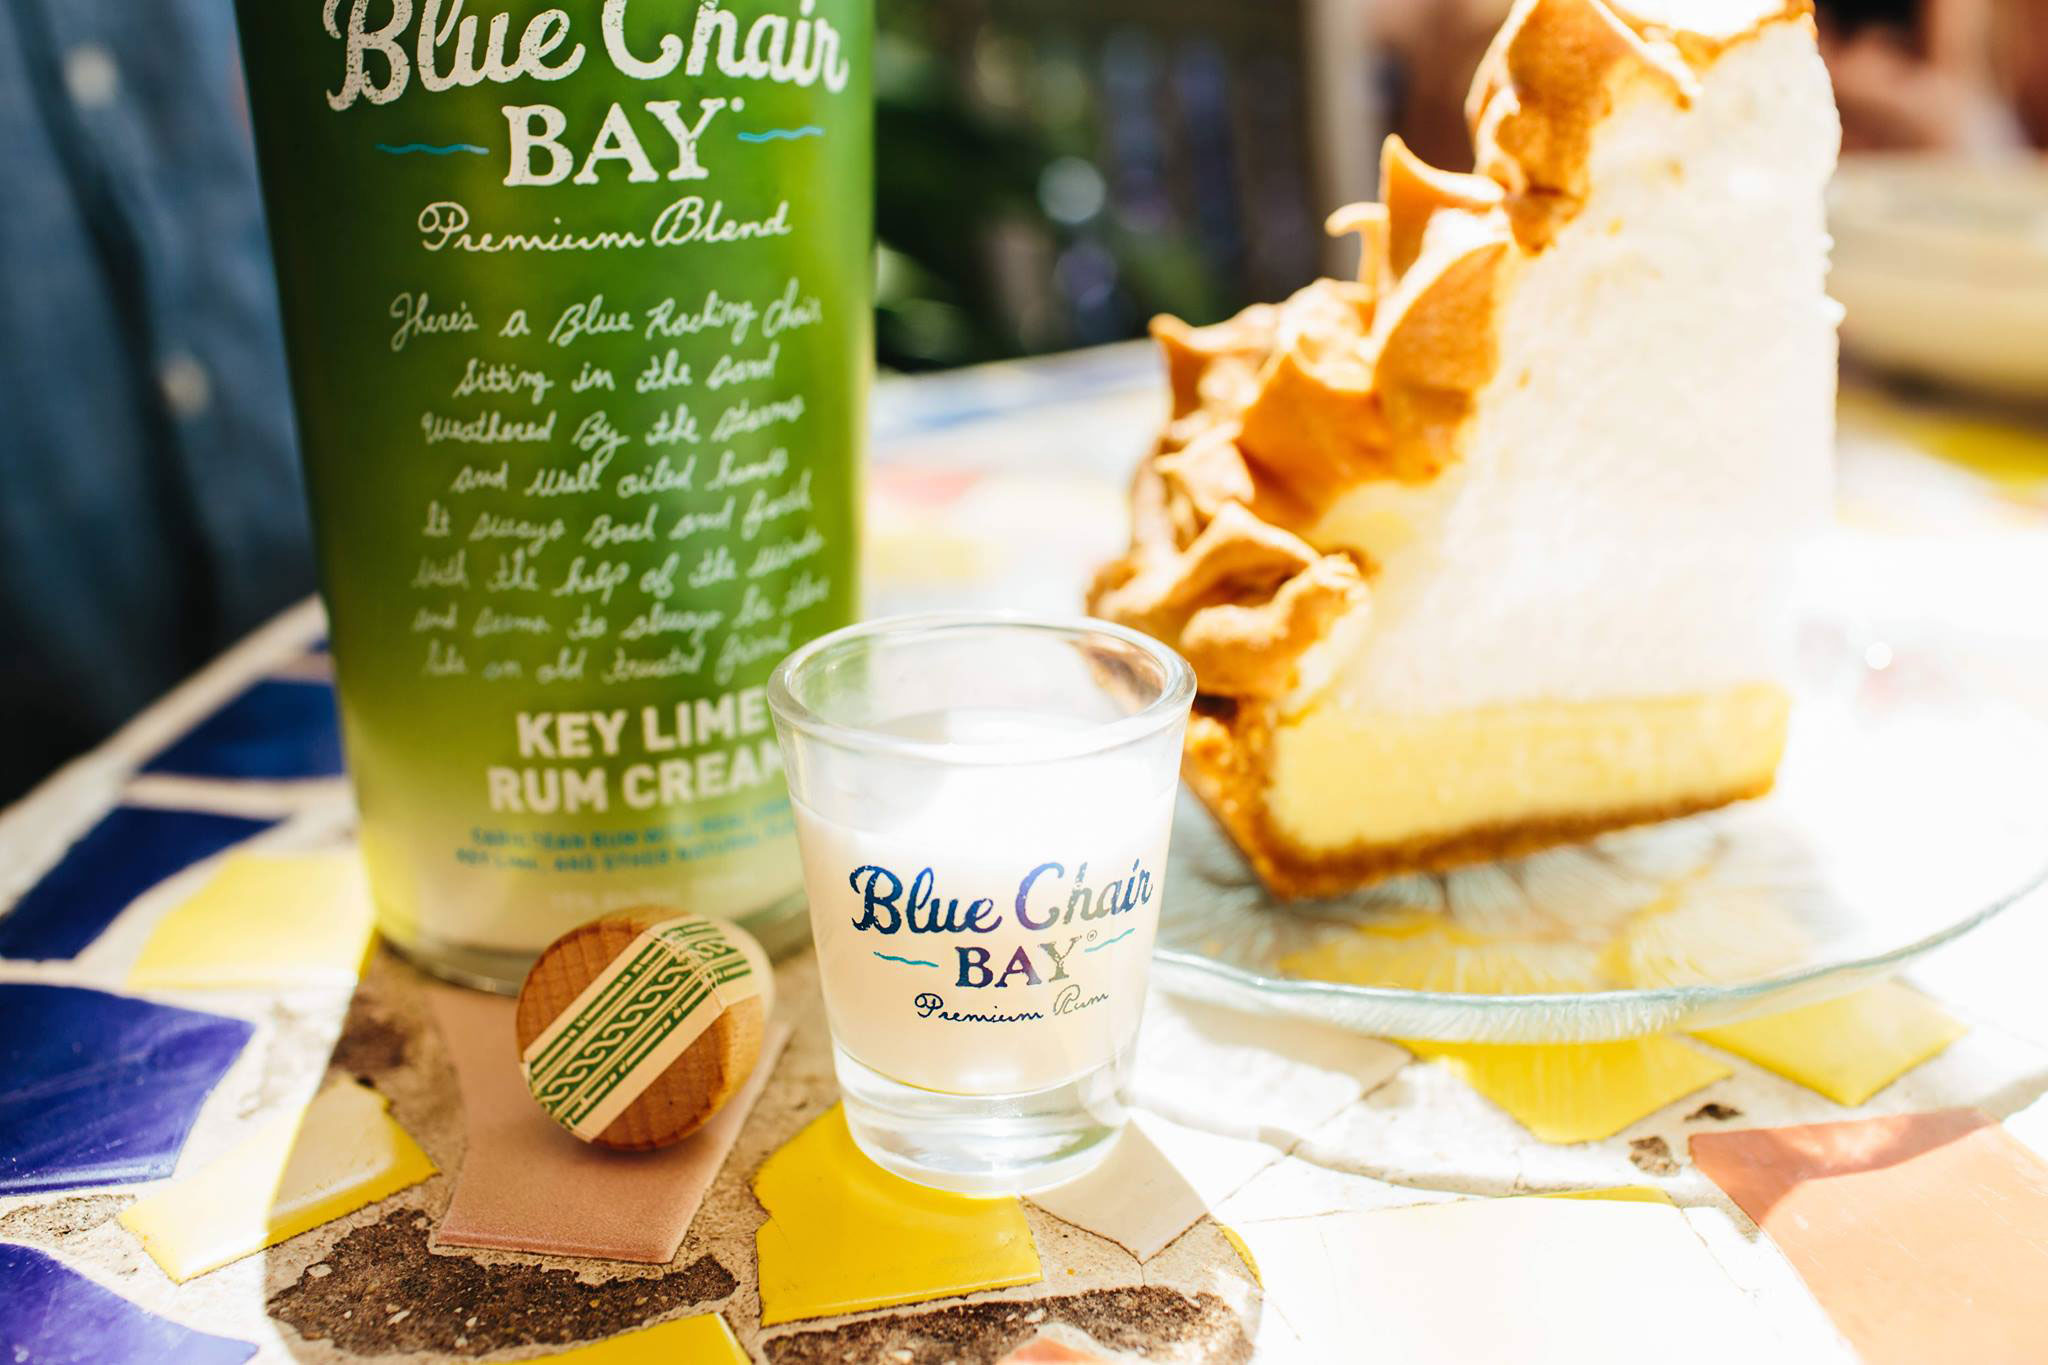 Blue Chair Bay Rum Kenny Chesney S Blue Chair Bay Rum Recipes Cowboys And Indians